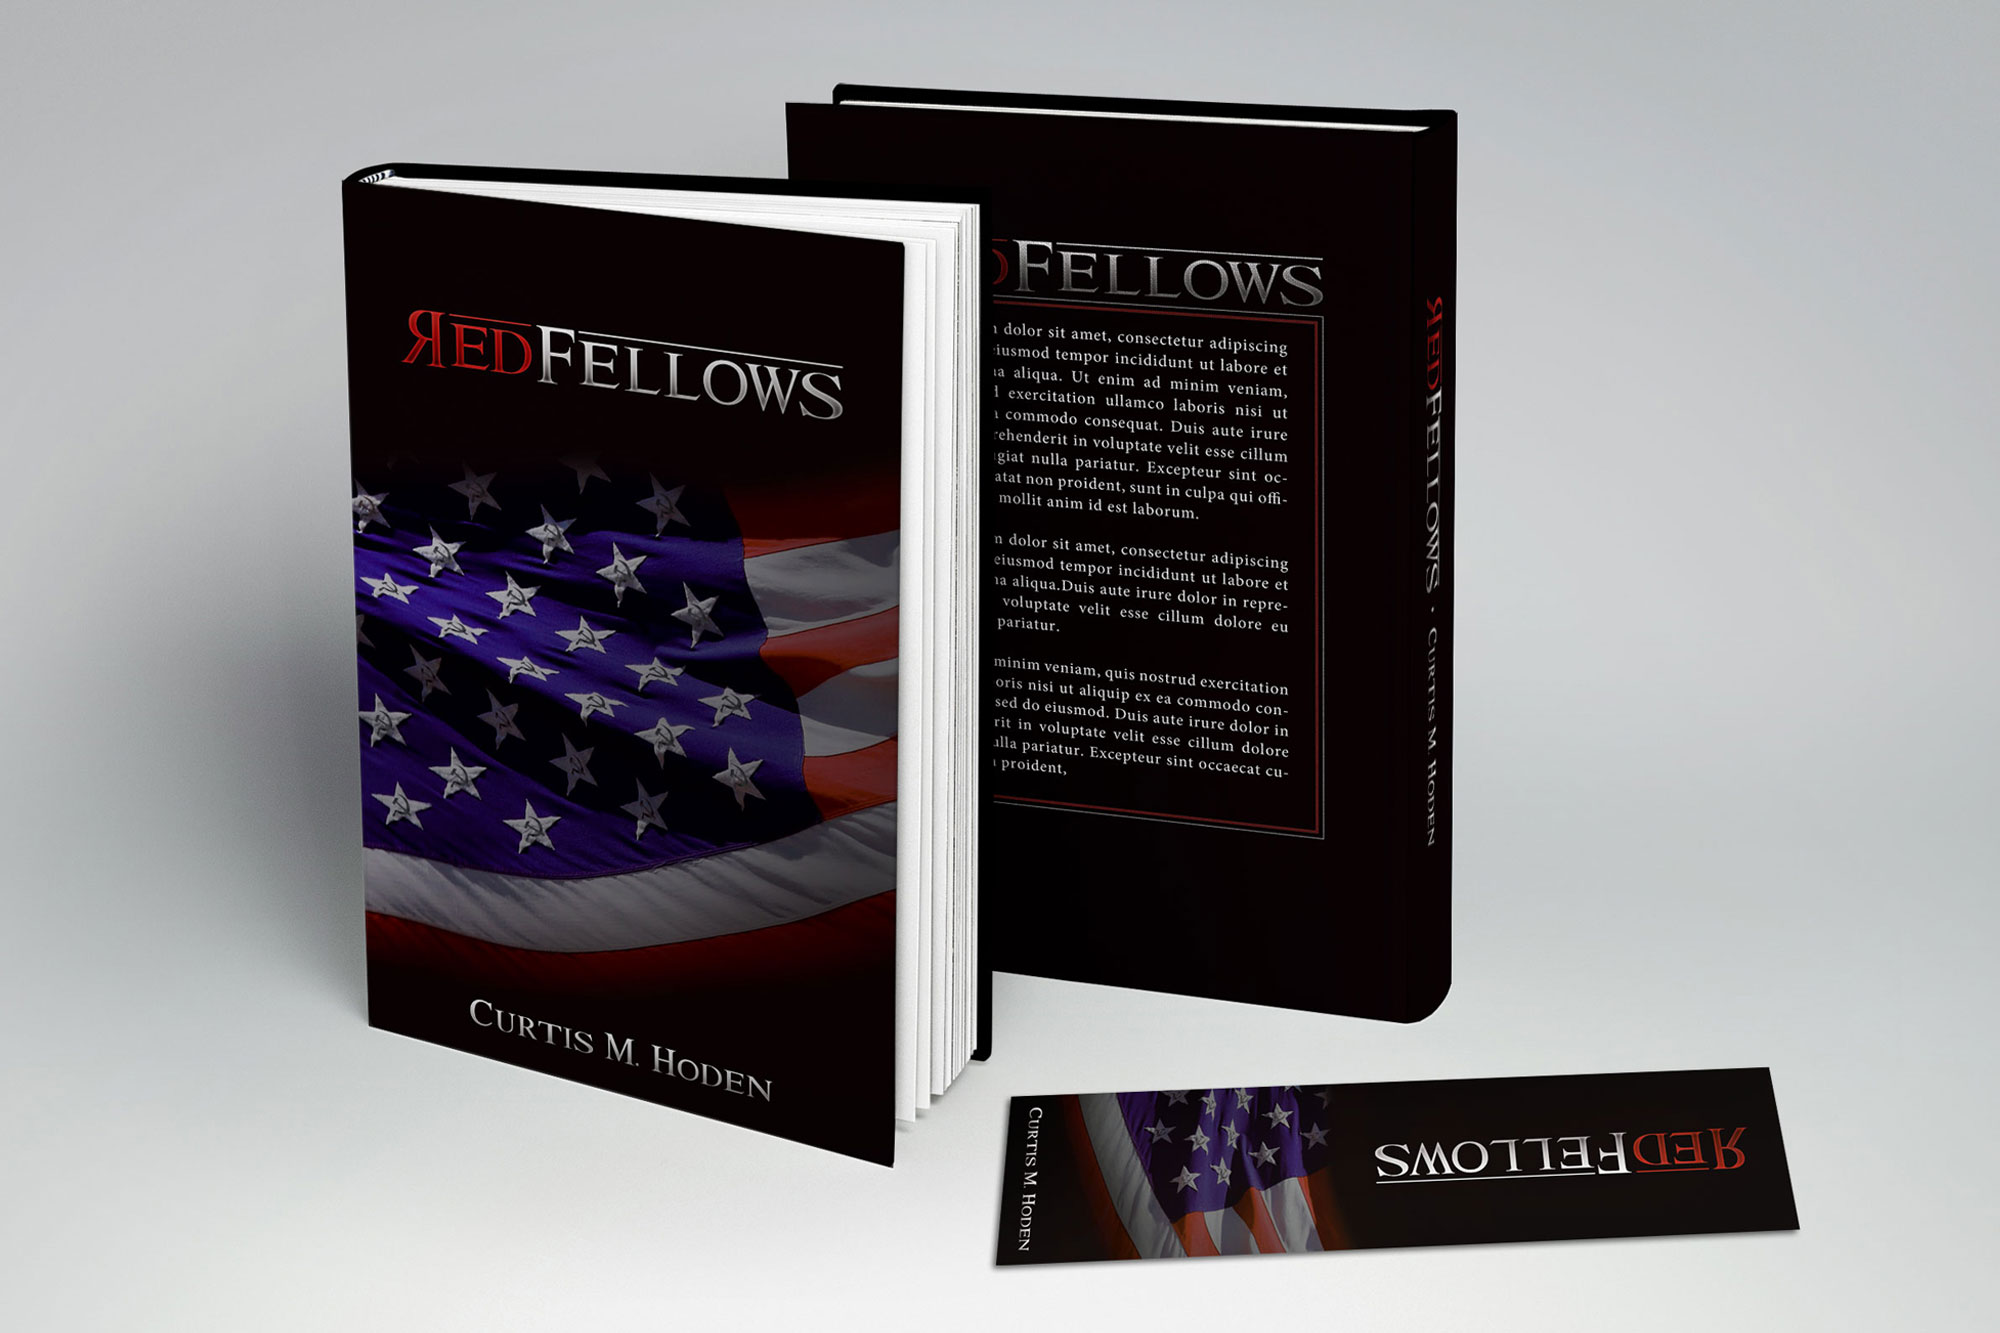 Red Fellow Book Cover Design